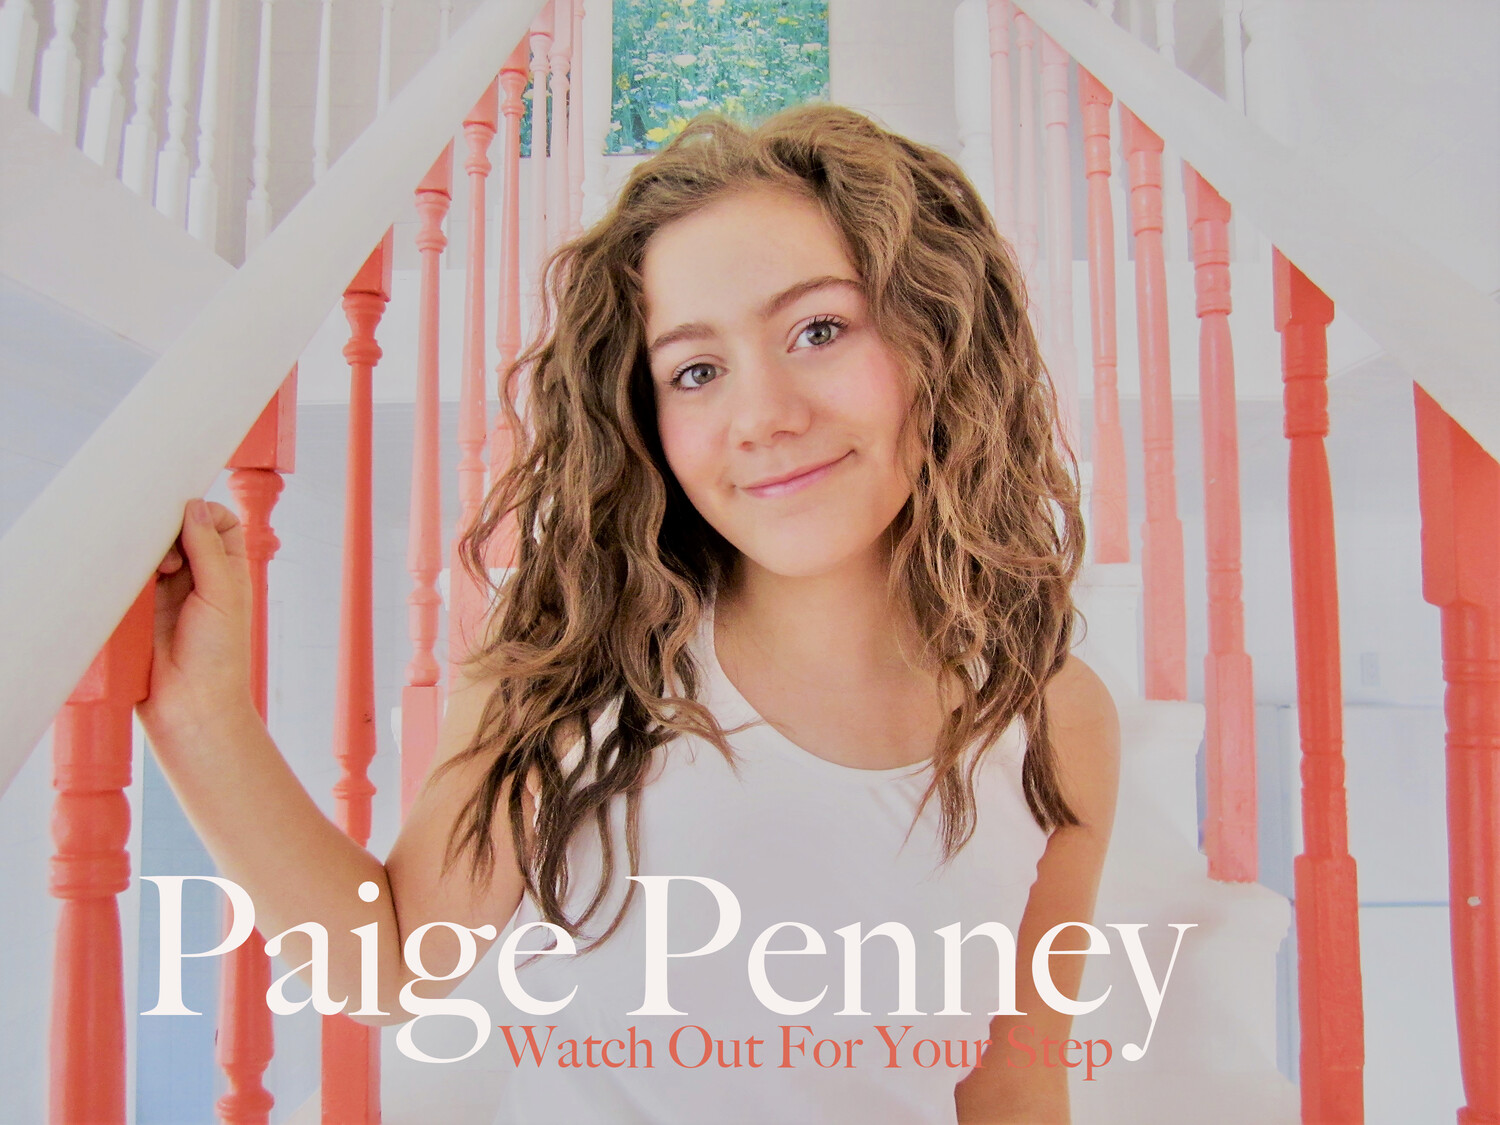 "Paige Penney ""Watch Out For Your Step"" CD"